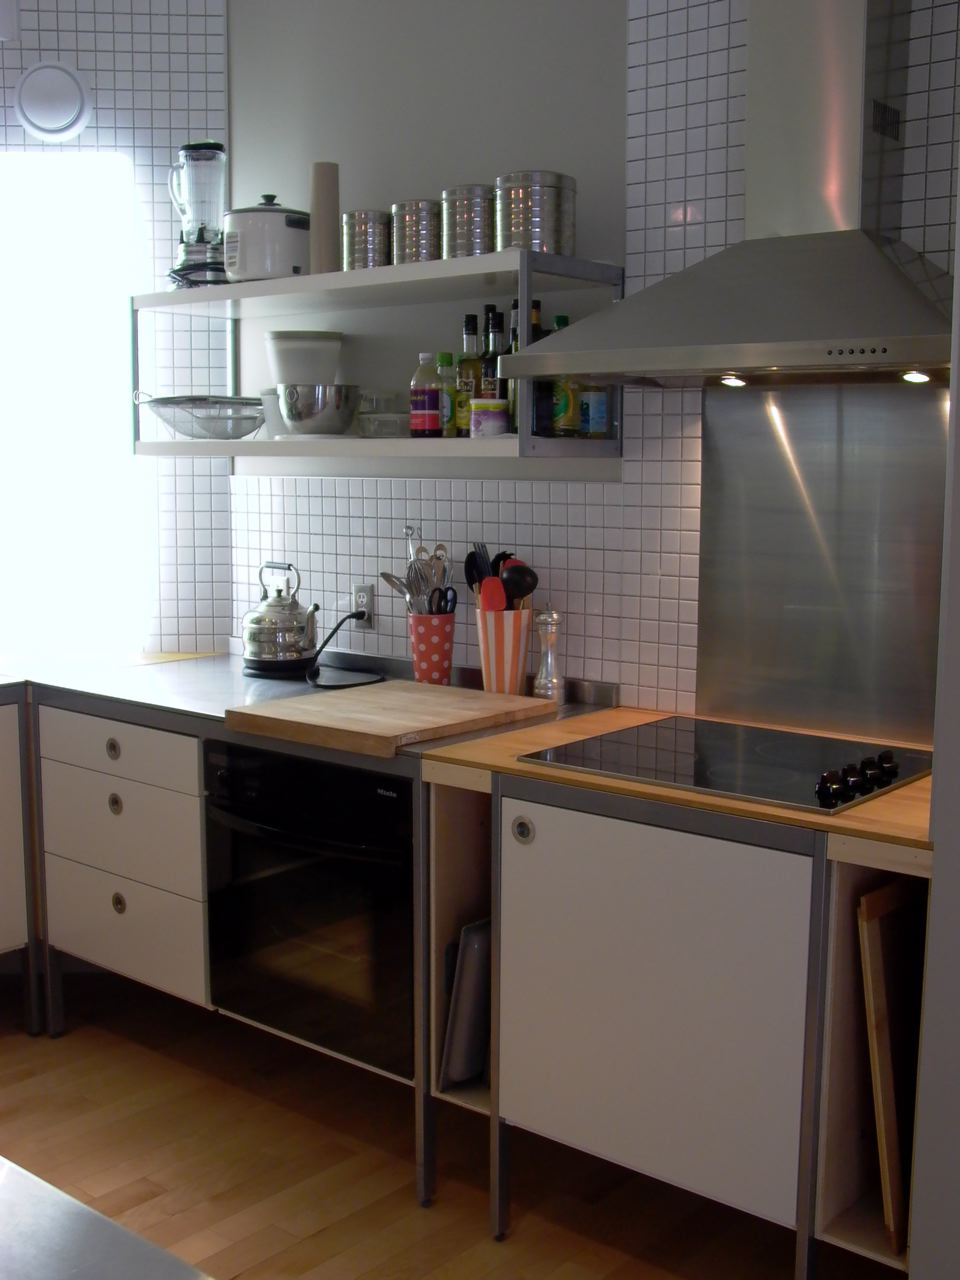 How To Install Farmhouse Sink From Ikea ~ Fitted dishwasher for the Udden  IKEA Hackers  IKEA Hackers